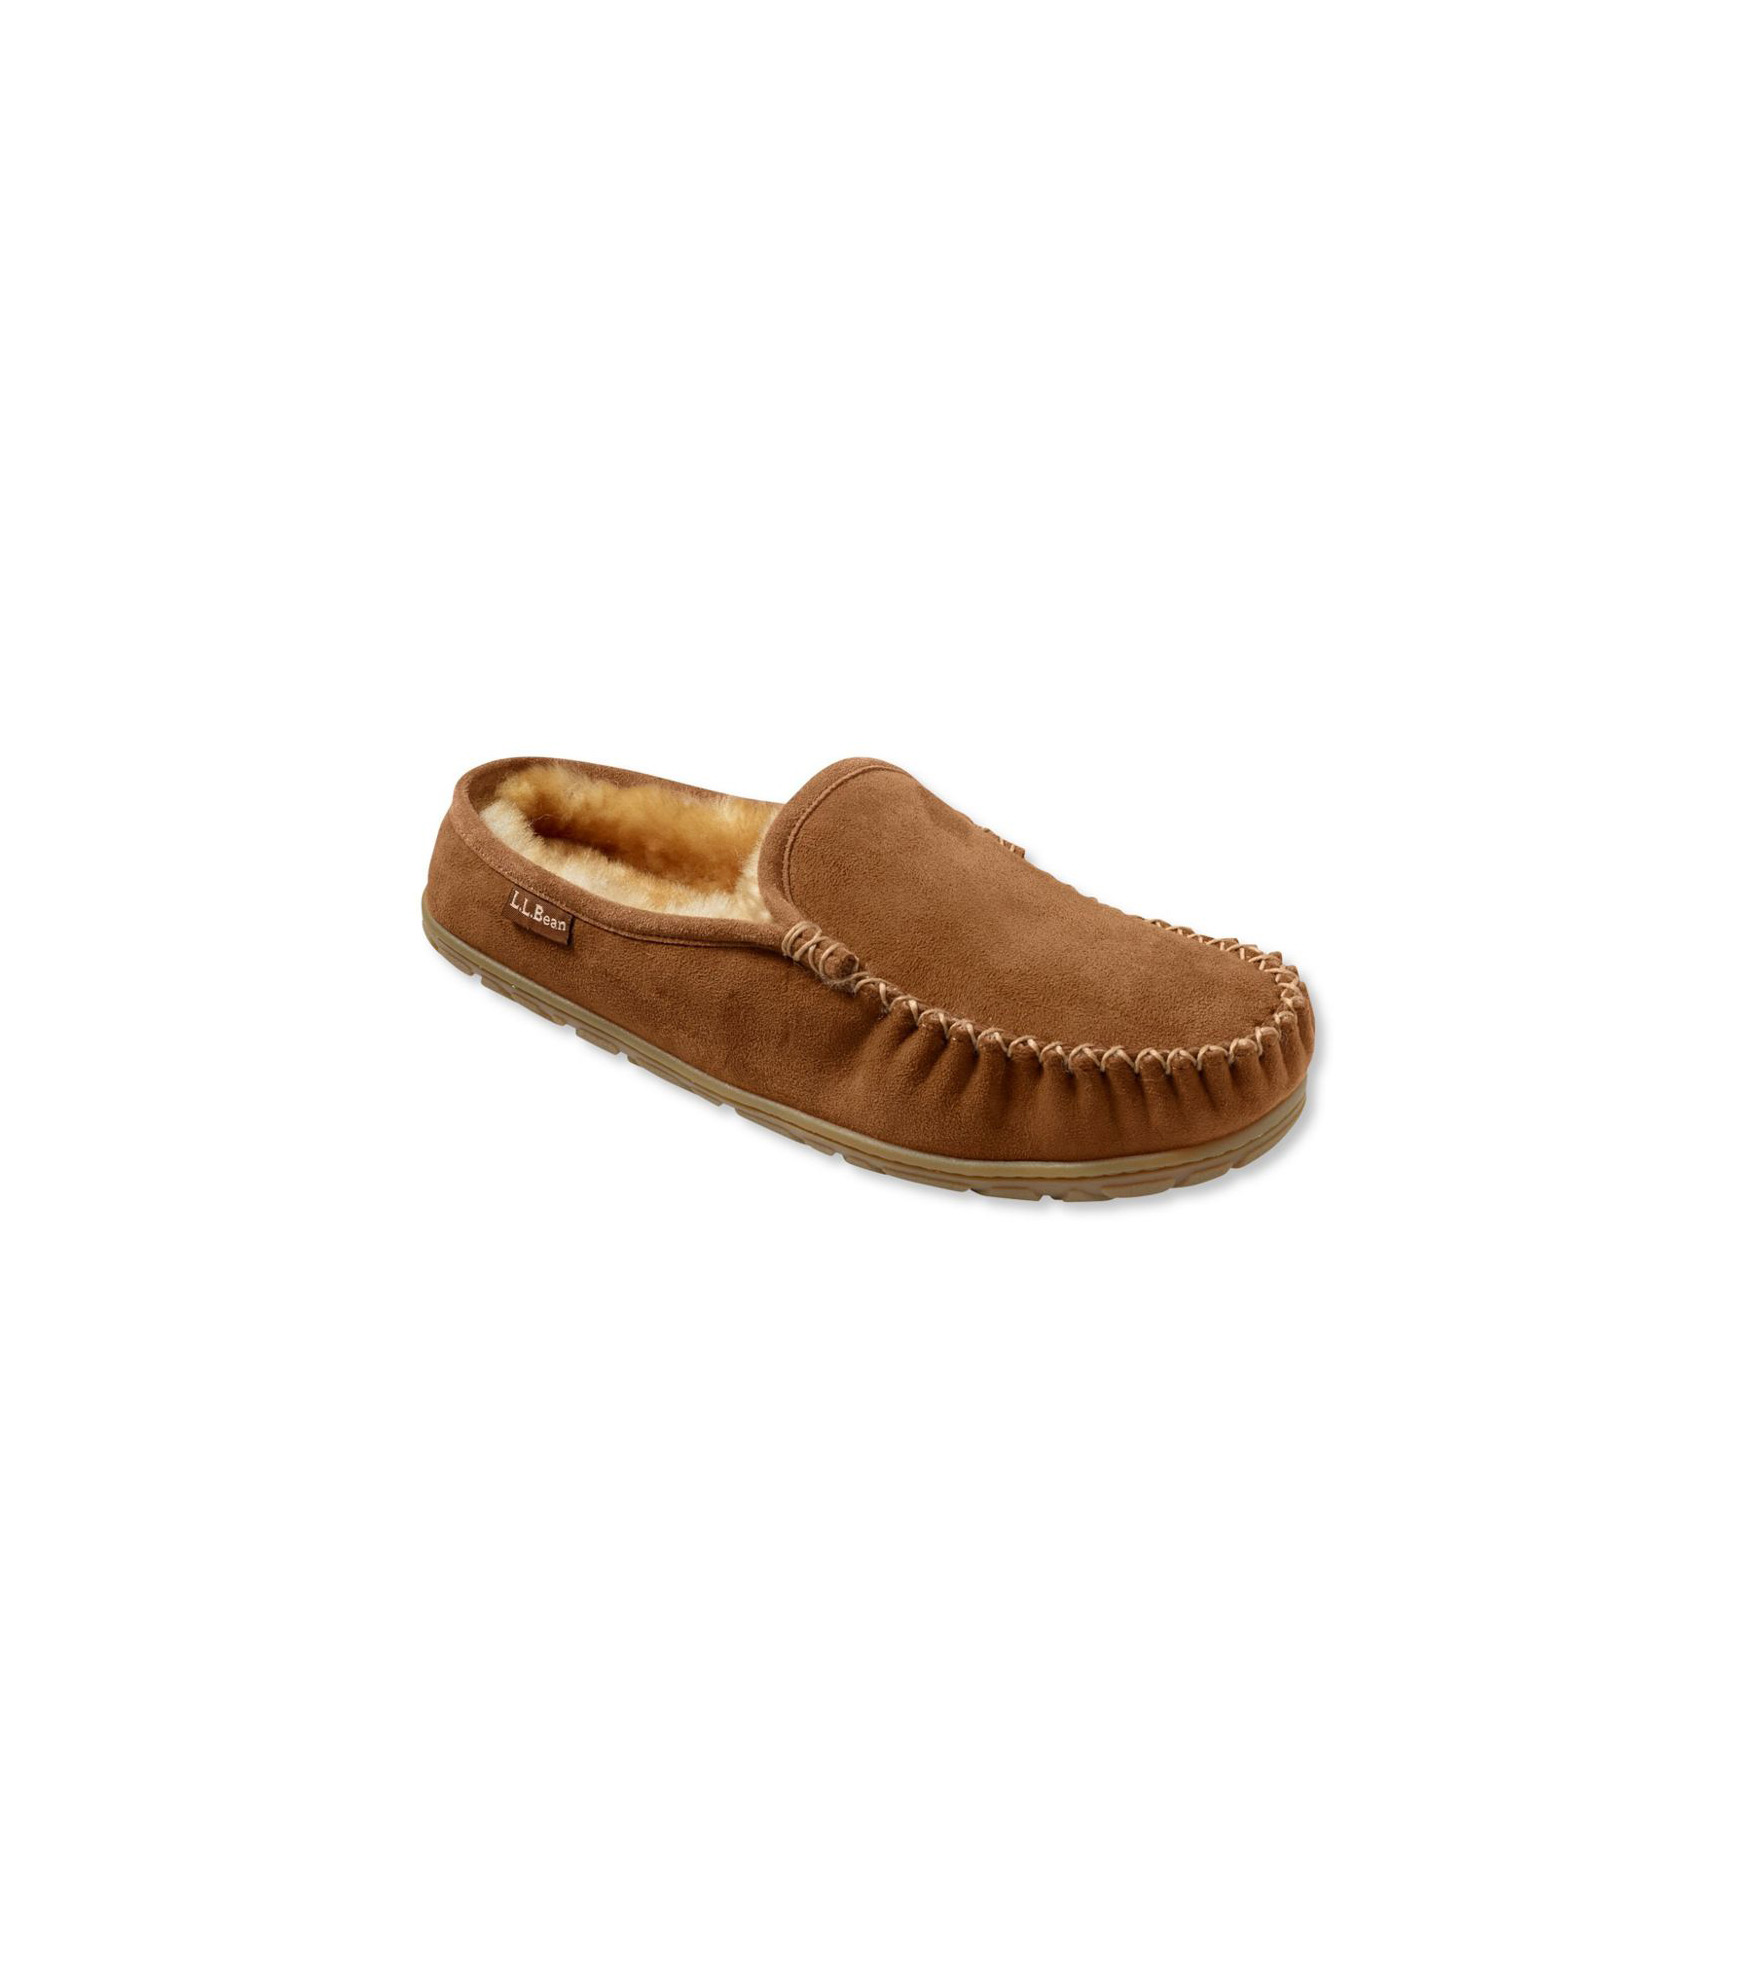 L.L. Bean Slippers. Valentines Gift Ideas for Men ...  sc 1 st  Real Simple & 55 Valentineu0027s Day Gifts for Your Boyfriend or Husband